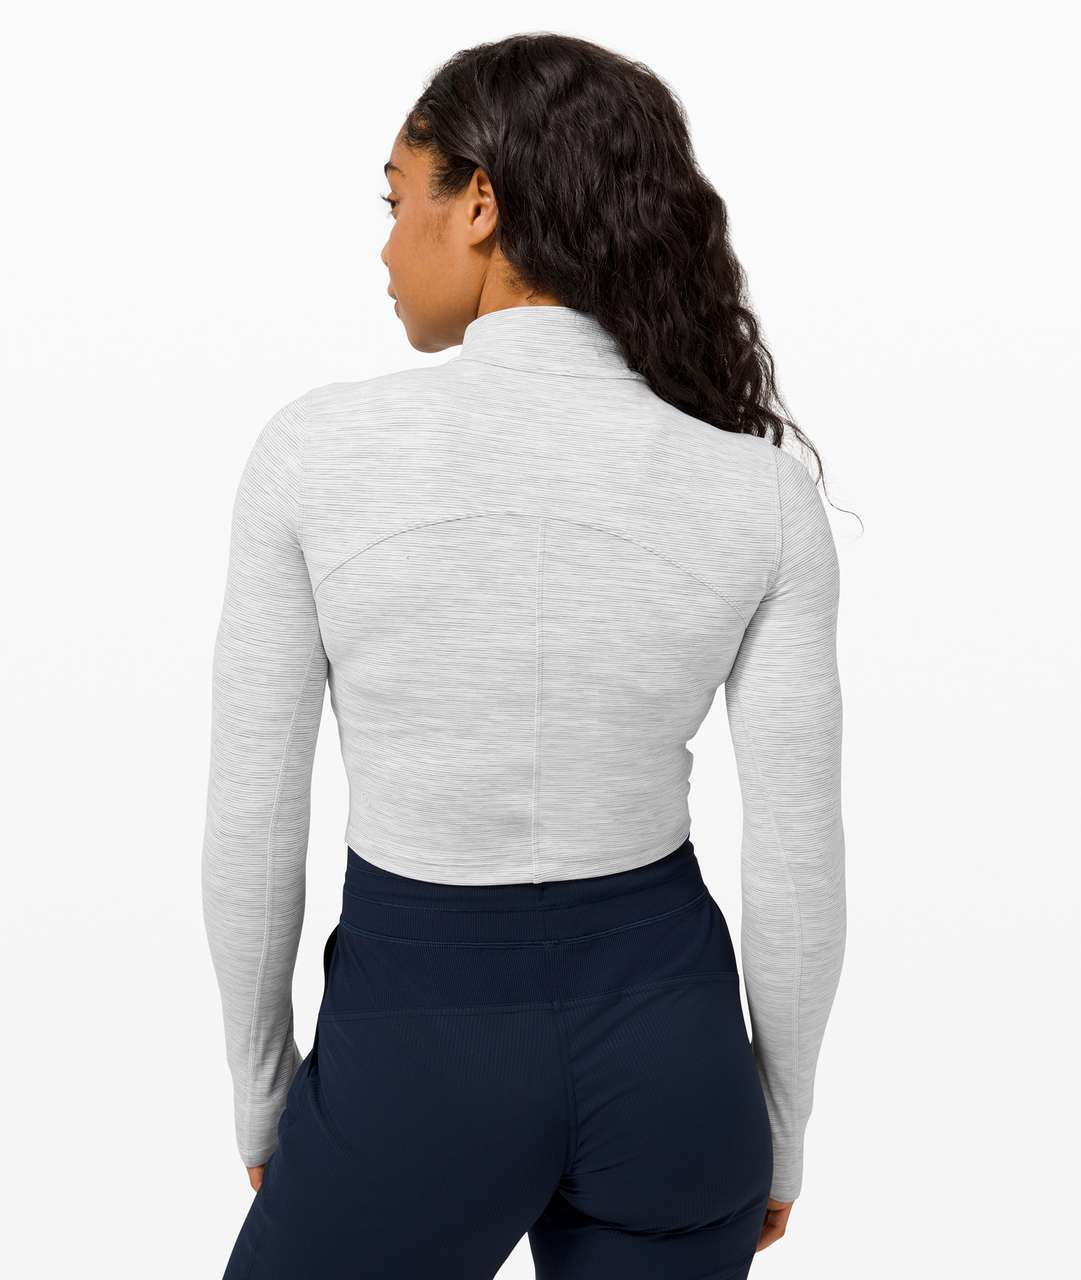 Lululemon All Aligned Mock Neck Long Sleeve - Wee Are From Space Nimbus Battleship